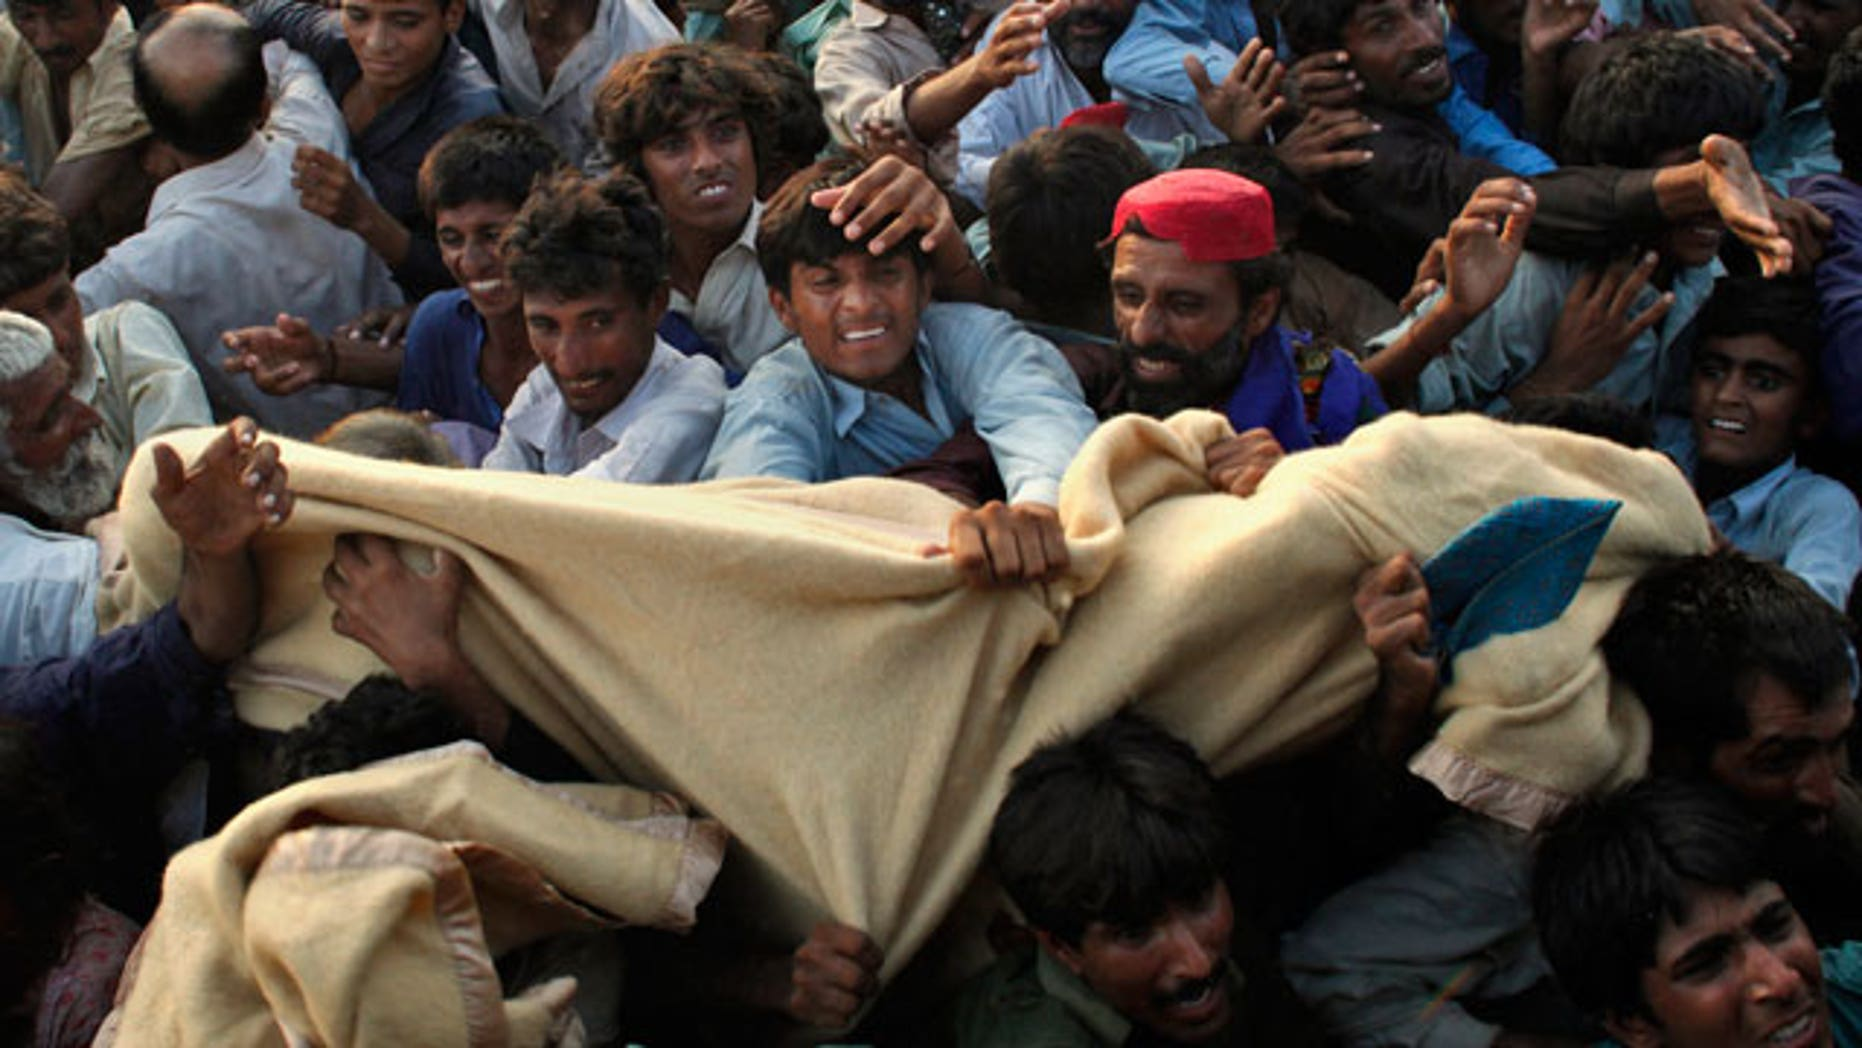 Pakistanis displaced by flooding fight for blankets during an aid distribution by the Pakistani Air Force at a temporary camp set up for residents who had to flee their homes in Sukkar, Sindh Province, southern Pakistan, Thursday, Aug. 19, 2010.